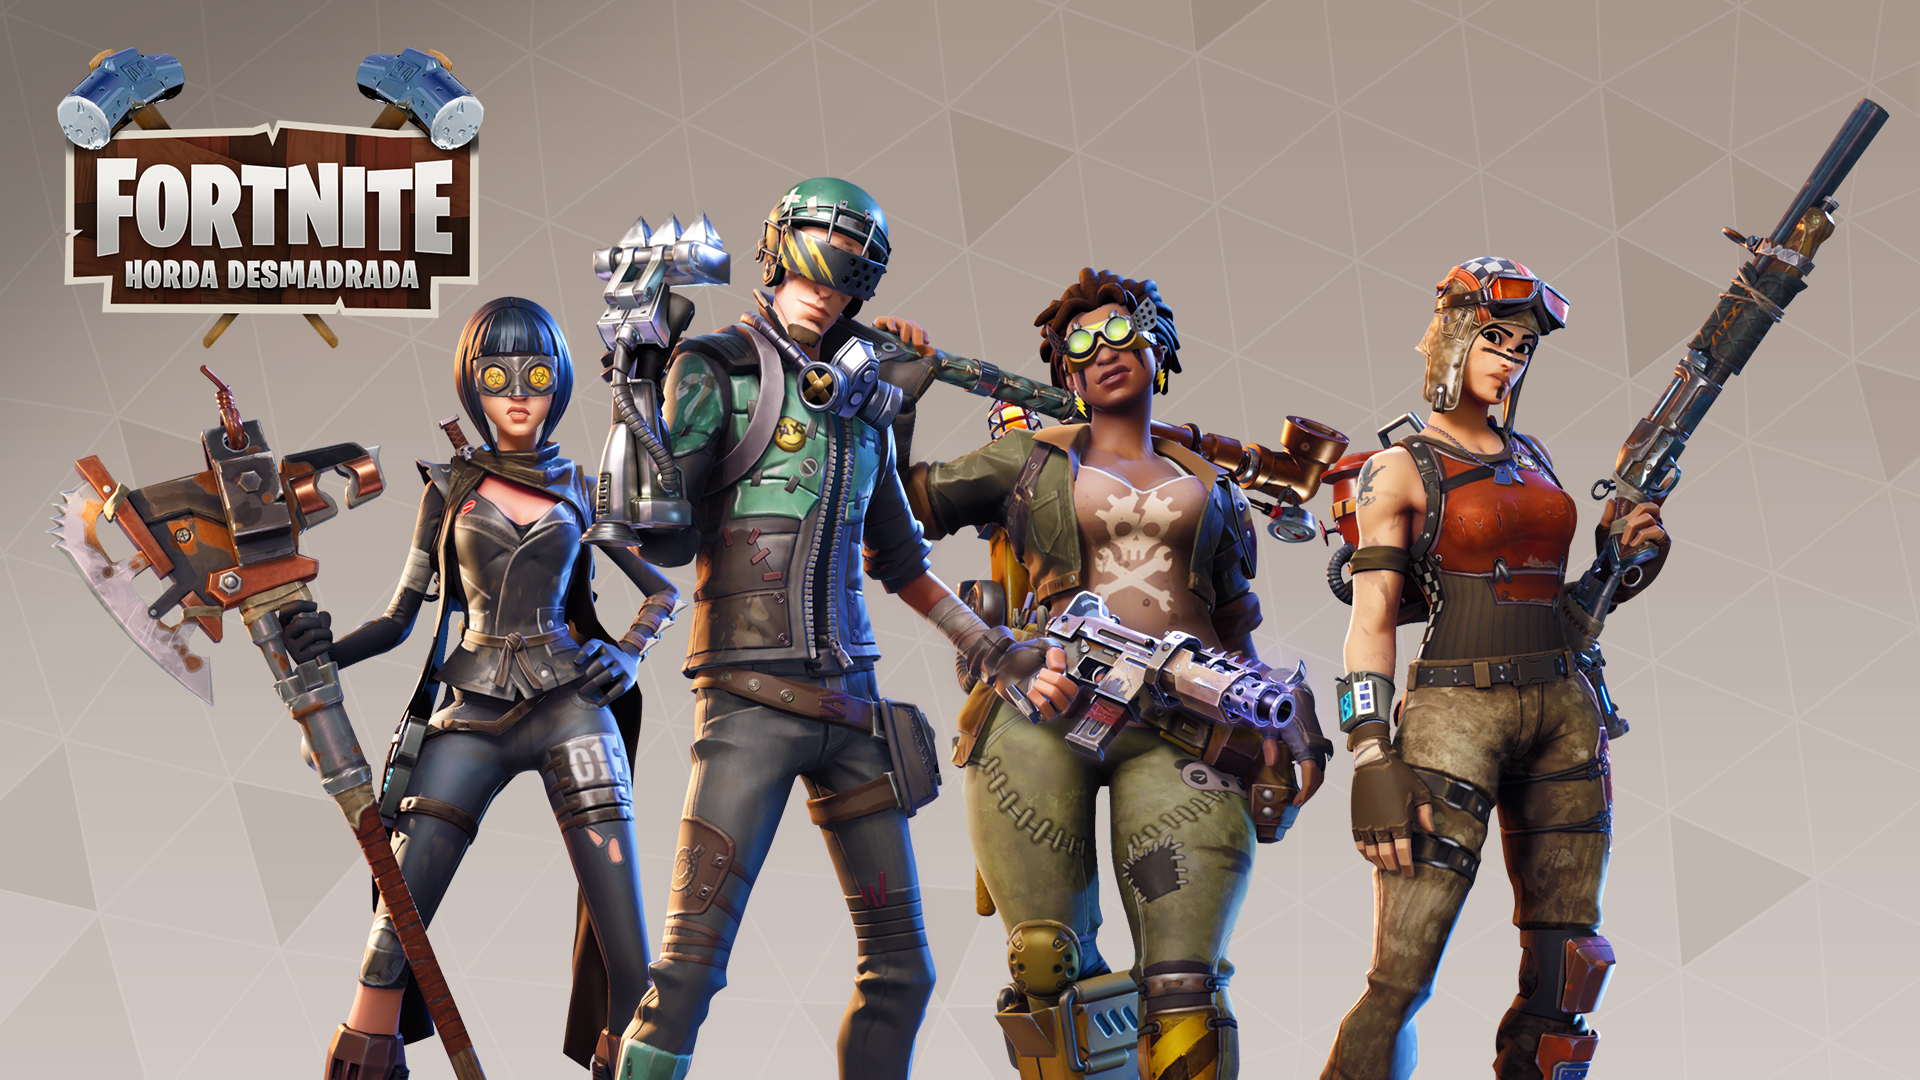 Fortnite%2Fblog%2Fea-1-7-patch-notes%2FES-MX-HB-Heroes-1920x1080-397516762419ca35791269034c221ba6ecb55080